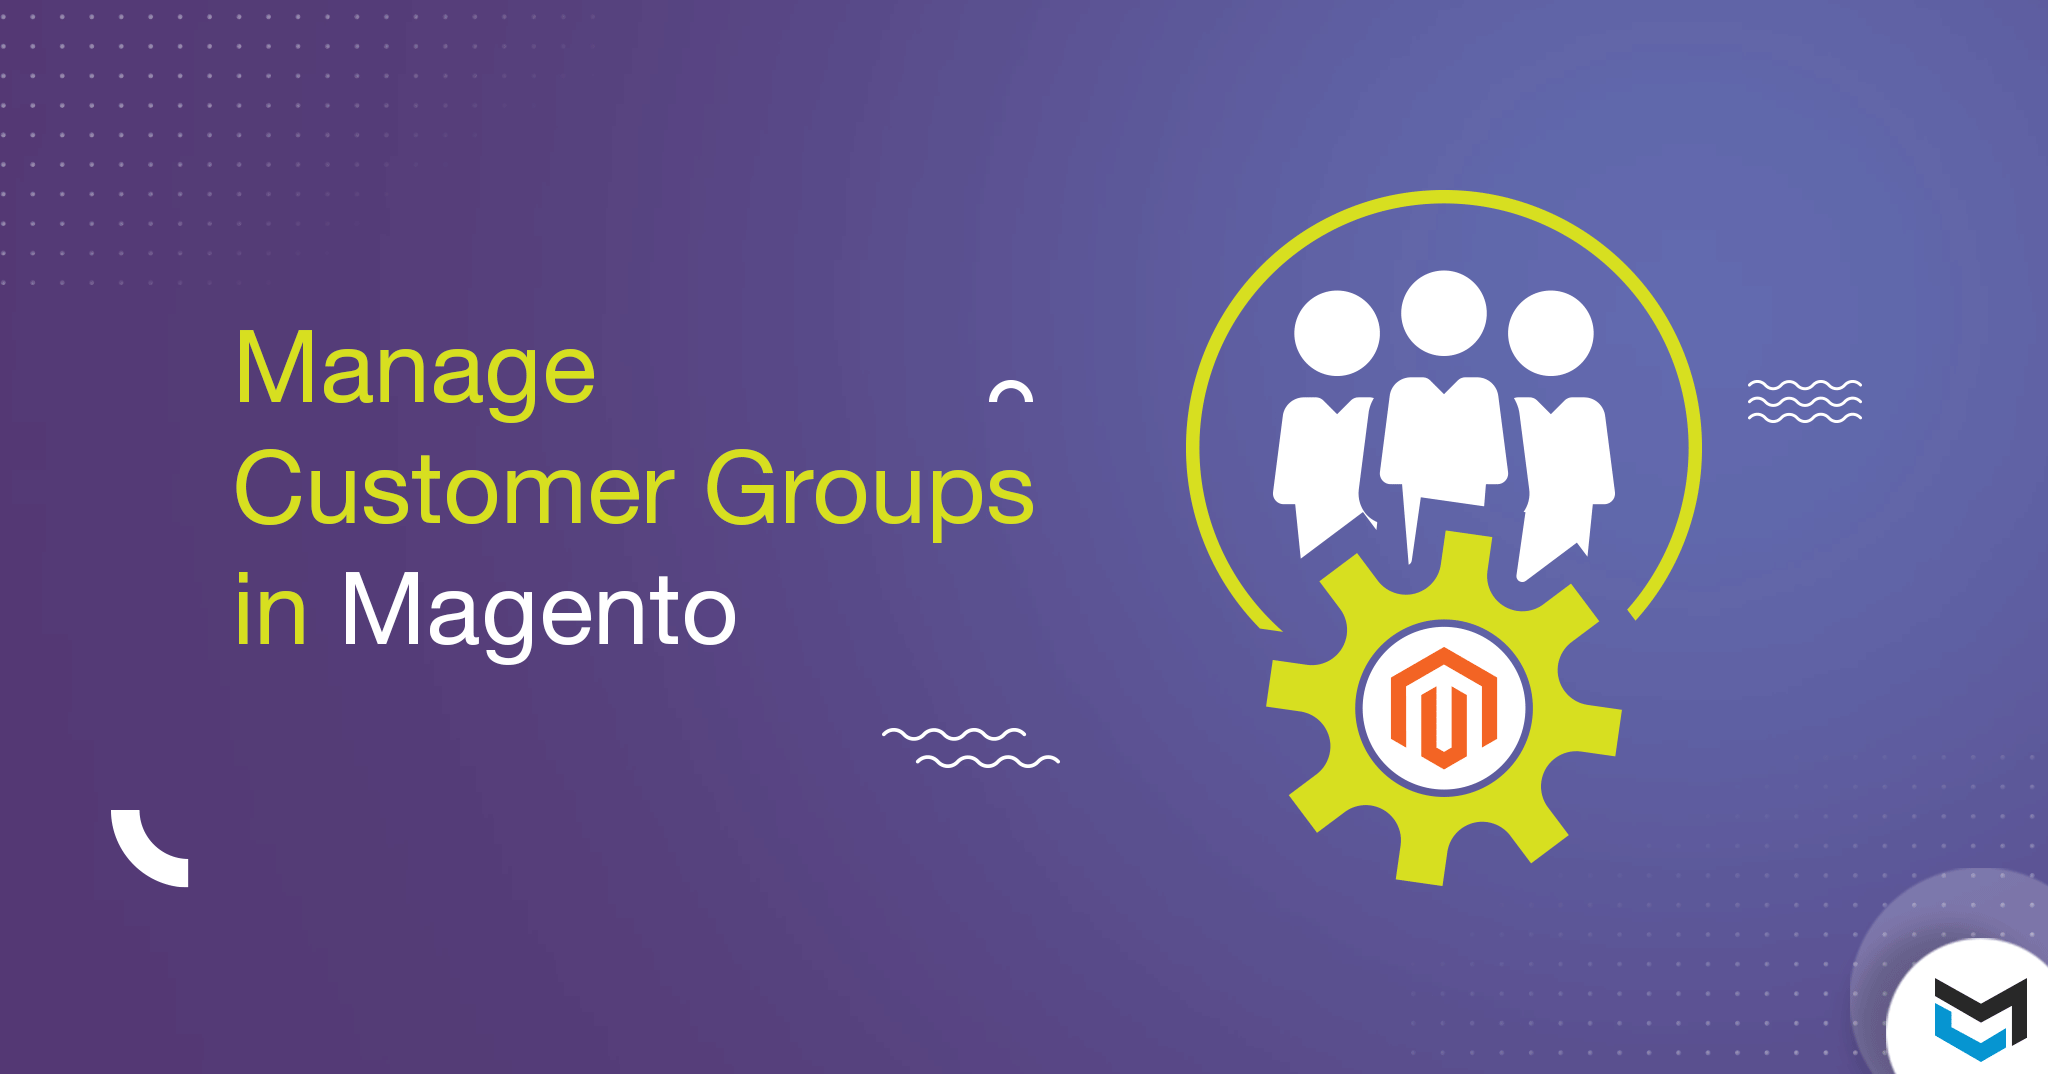 Manage Customer Groups in Magento